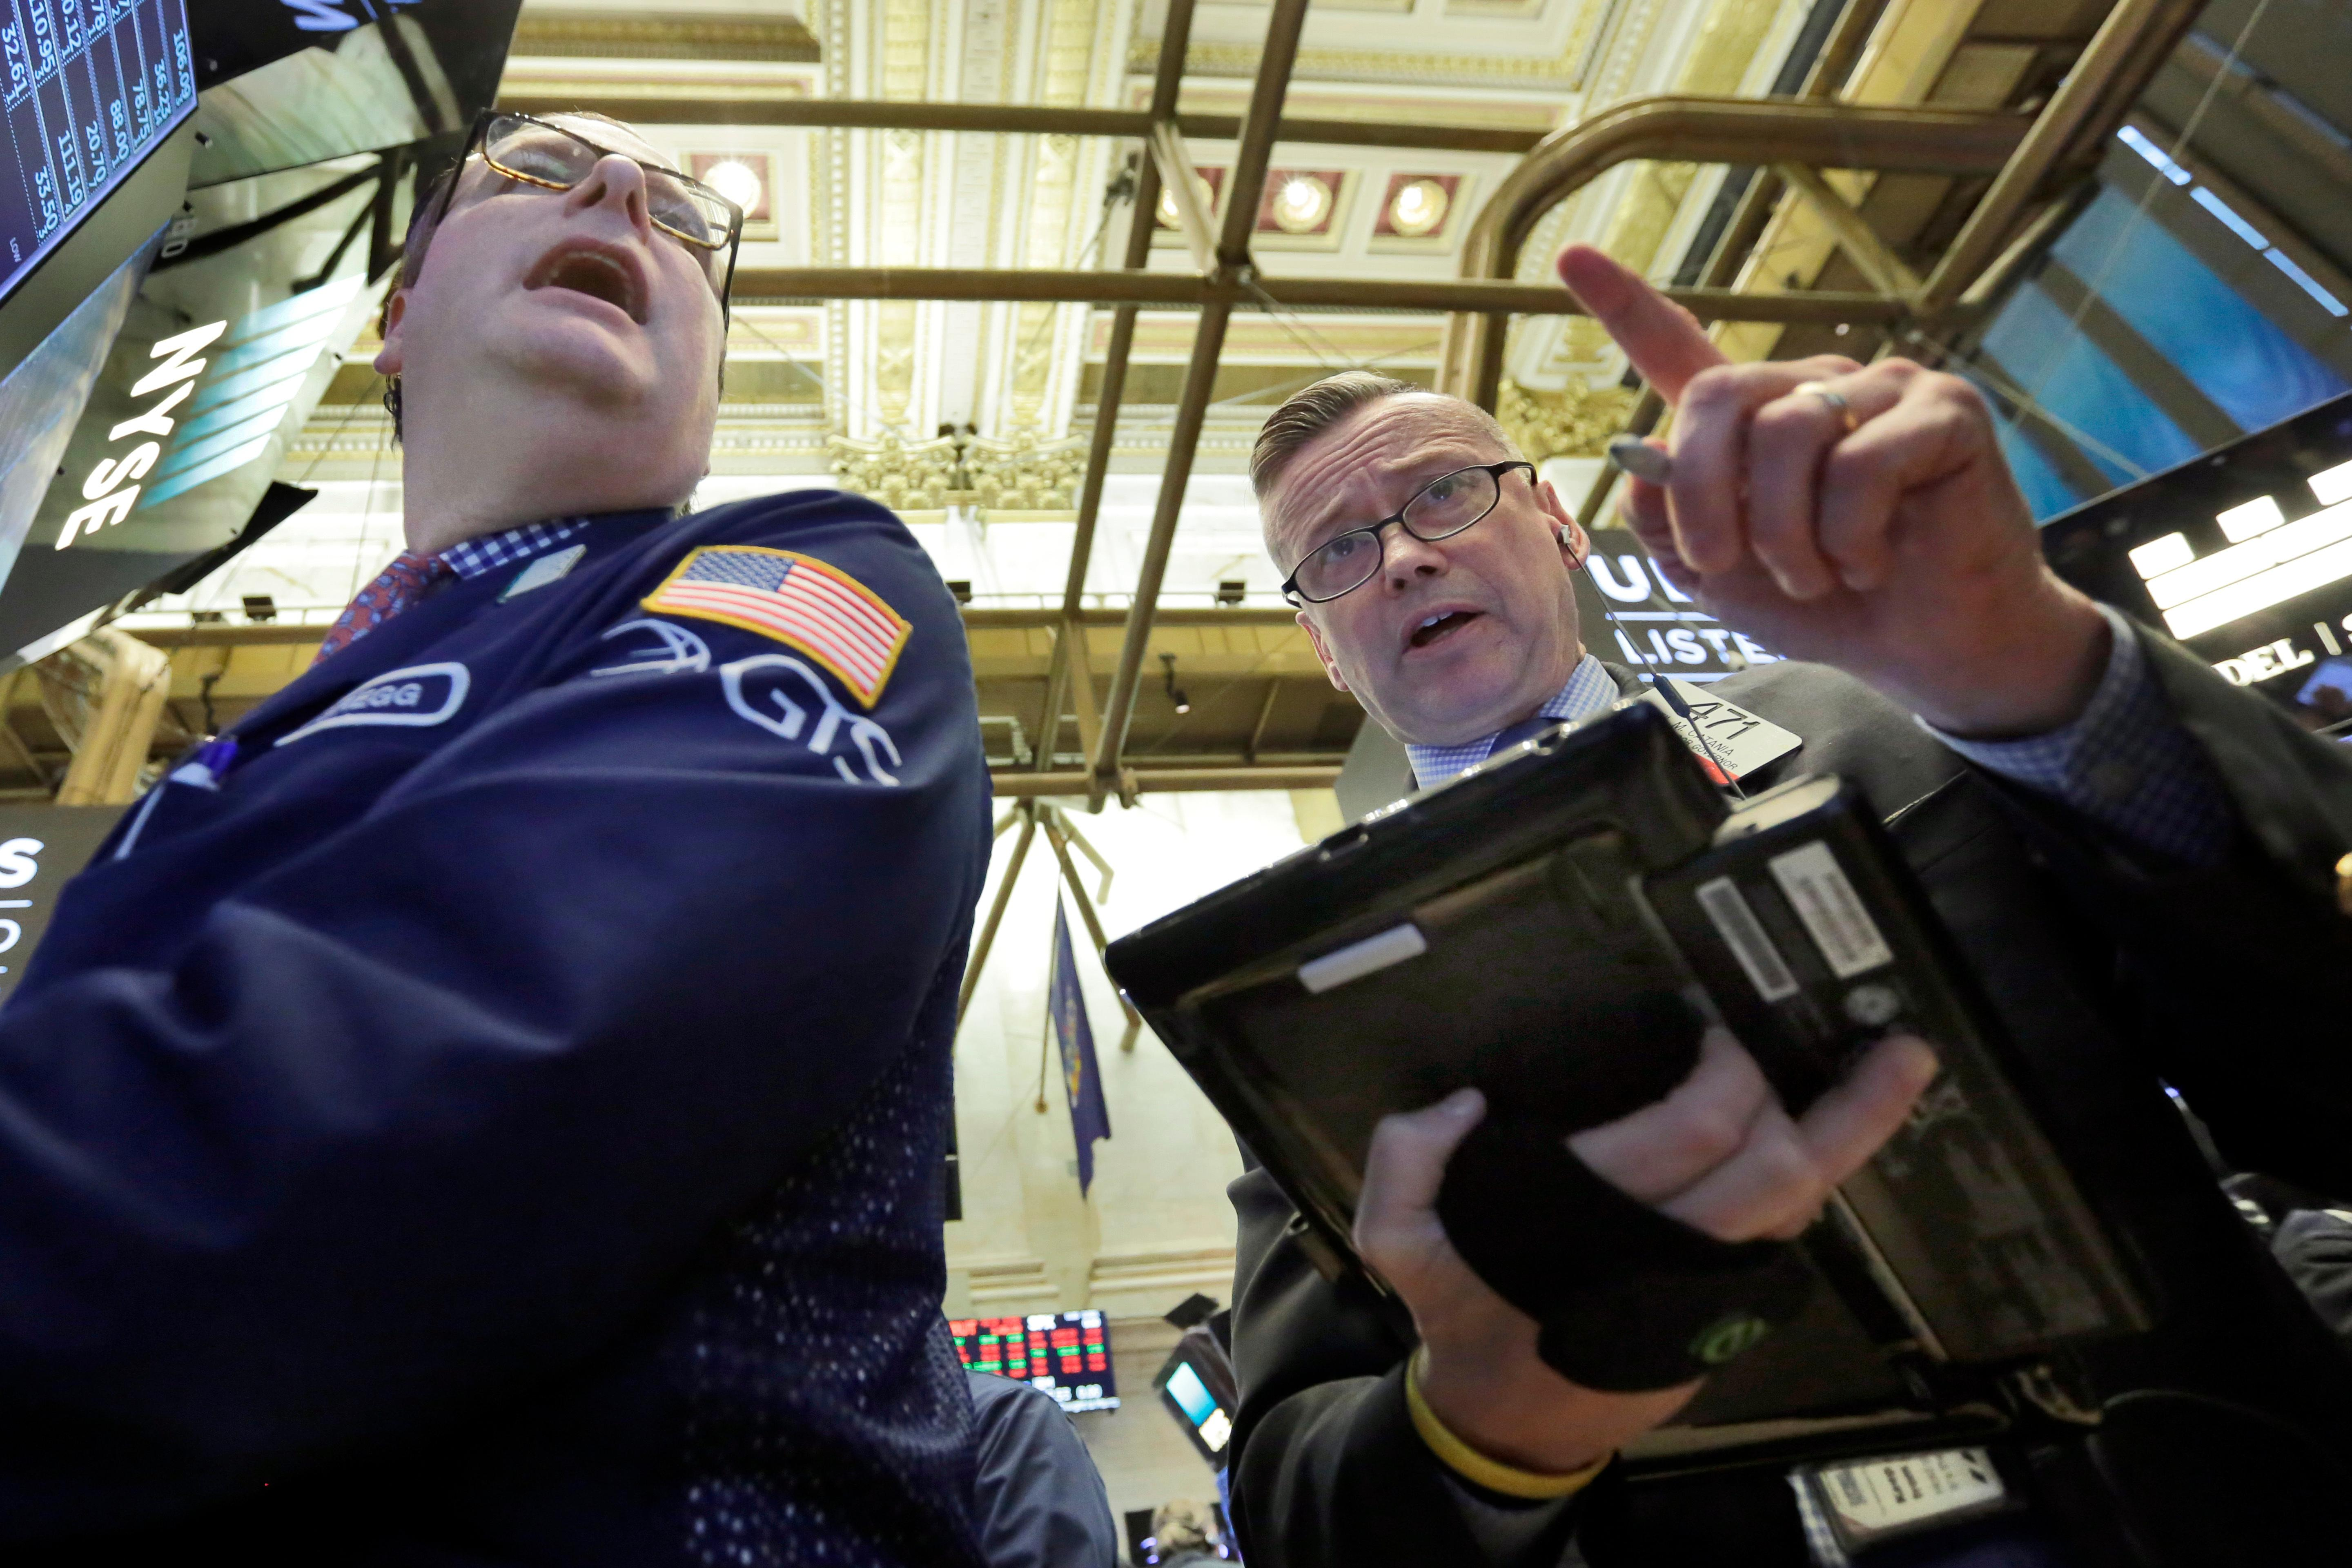 Specialist Gregg Maloney, left, and trader Neil Catania work on the floor of the New York Stock Exchange, Tuesday, Feb. 6, 2018. The Dow Jones industrial average fell as much as 500 points in early trading, bringing the index down 10 percent from the record high it reached on January 26. The DJIA quickly recovered much of that loss. (AP Photo/Richard Drew)